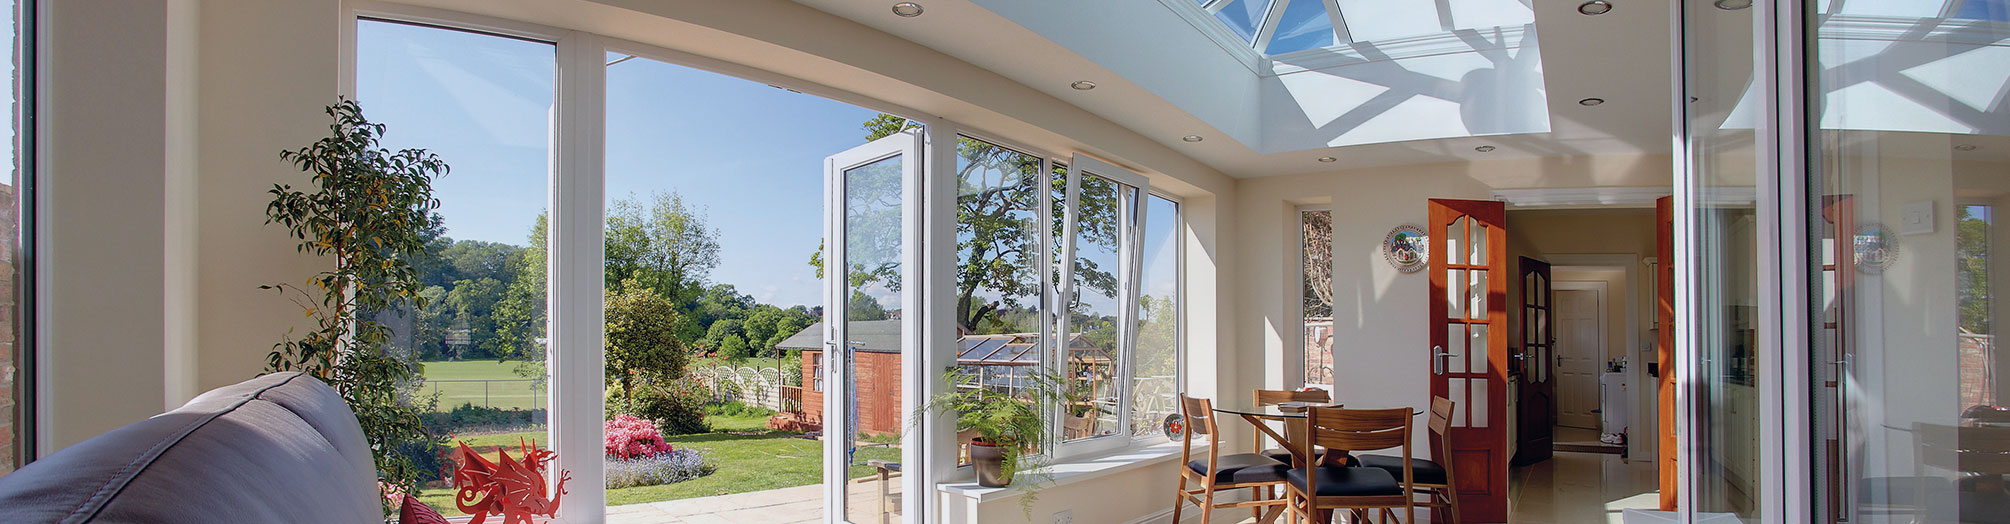 Tiled Roof Conservatories header image